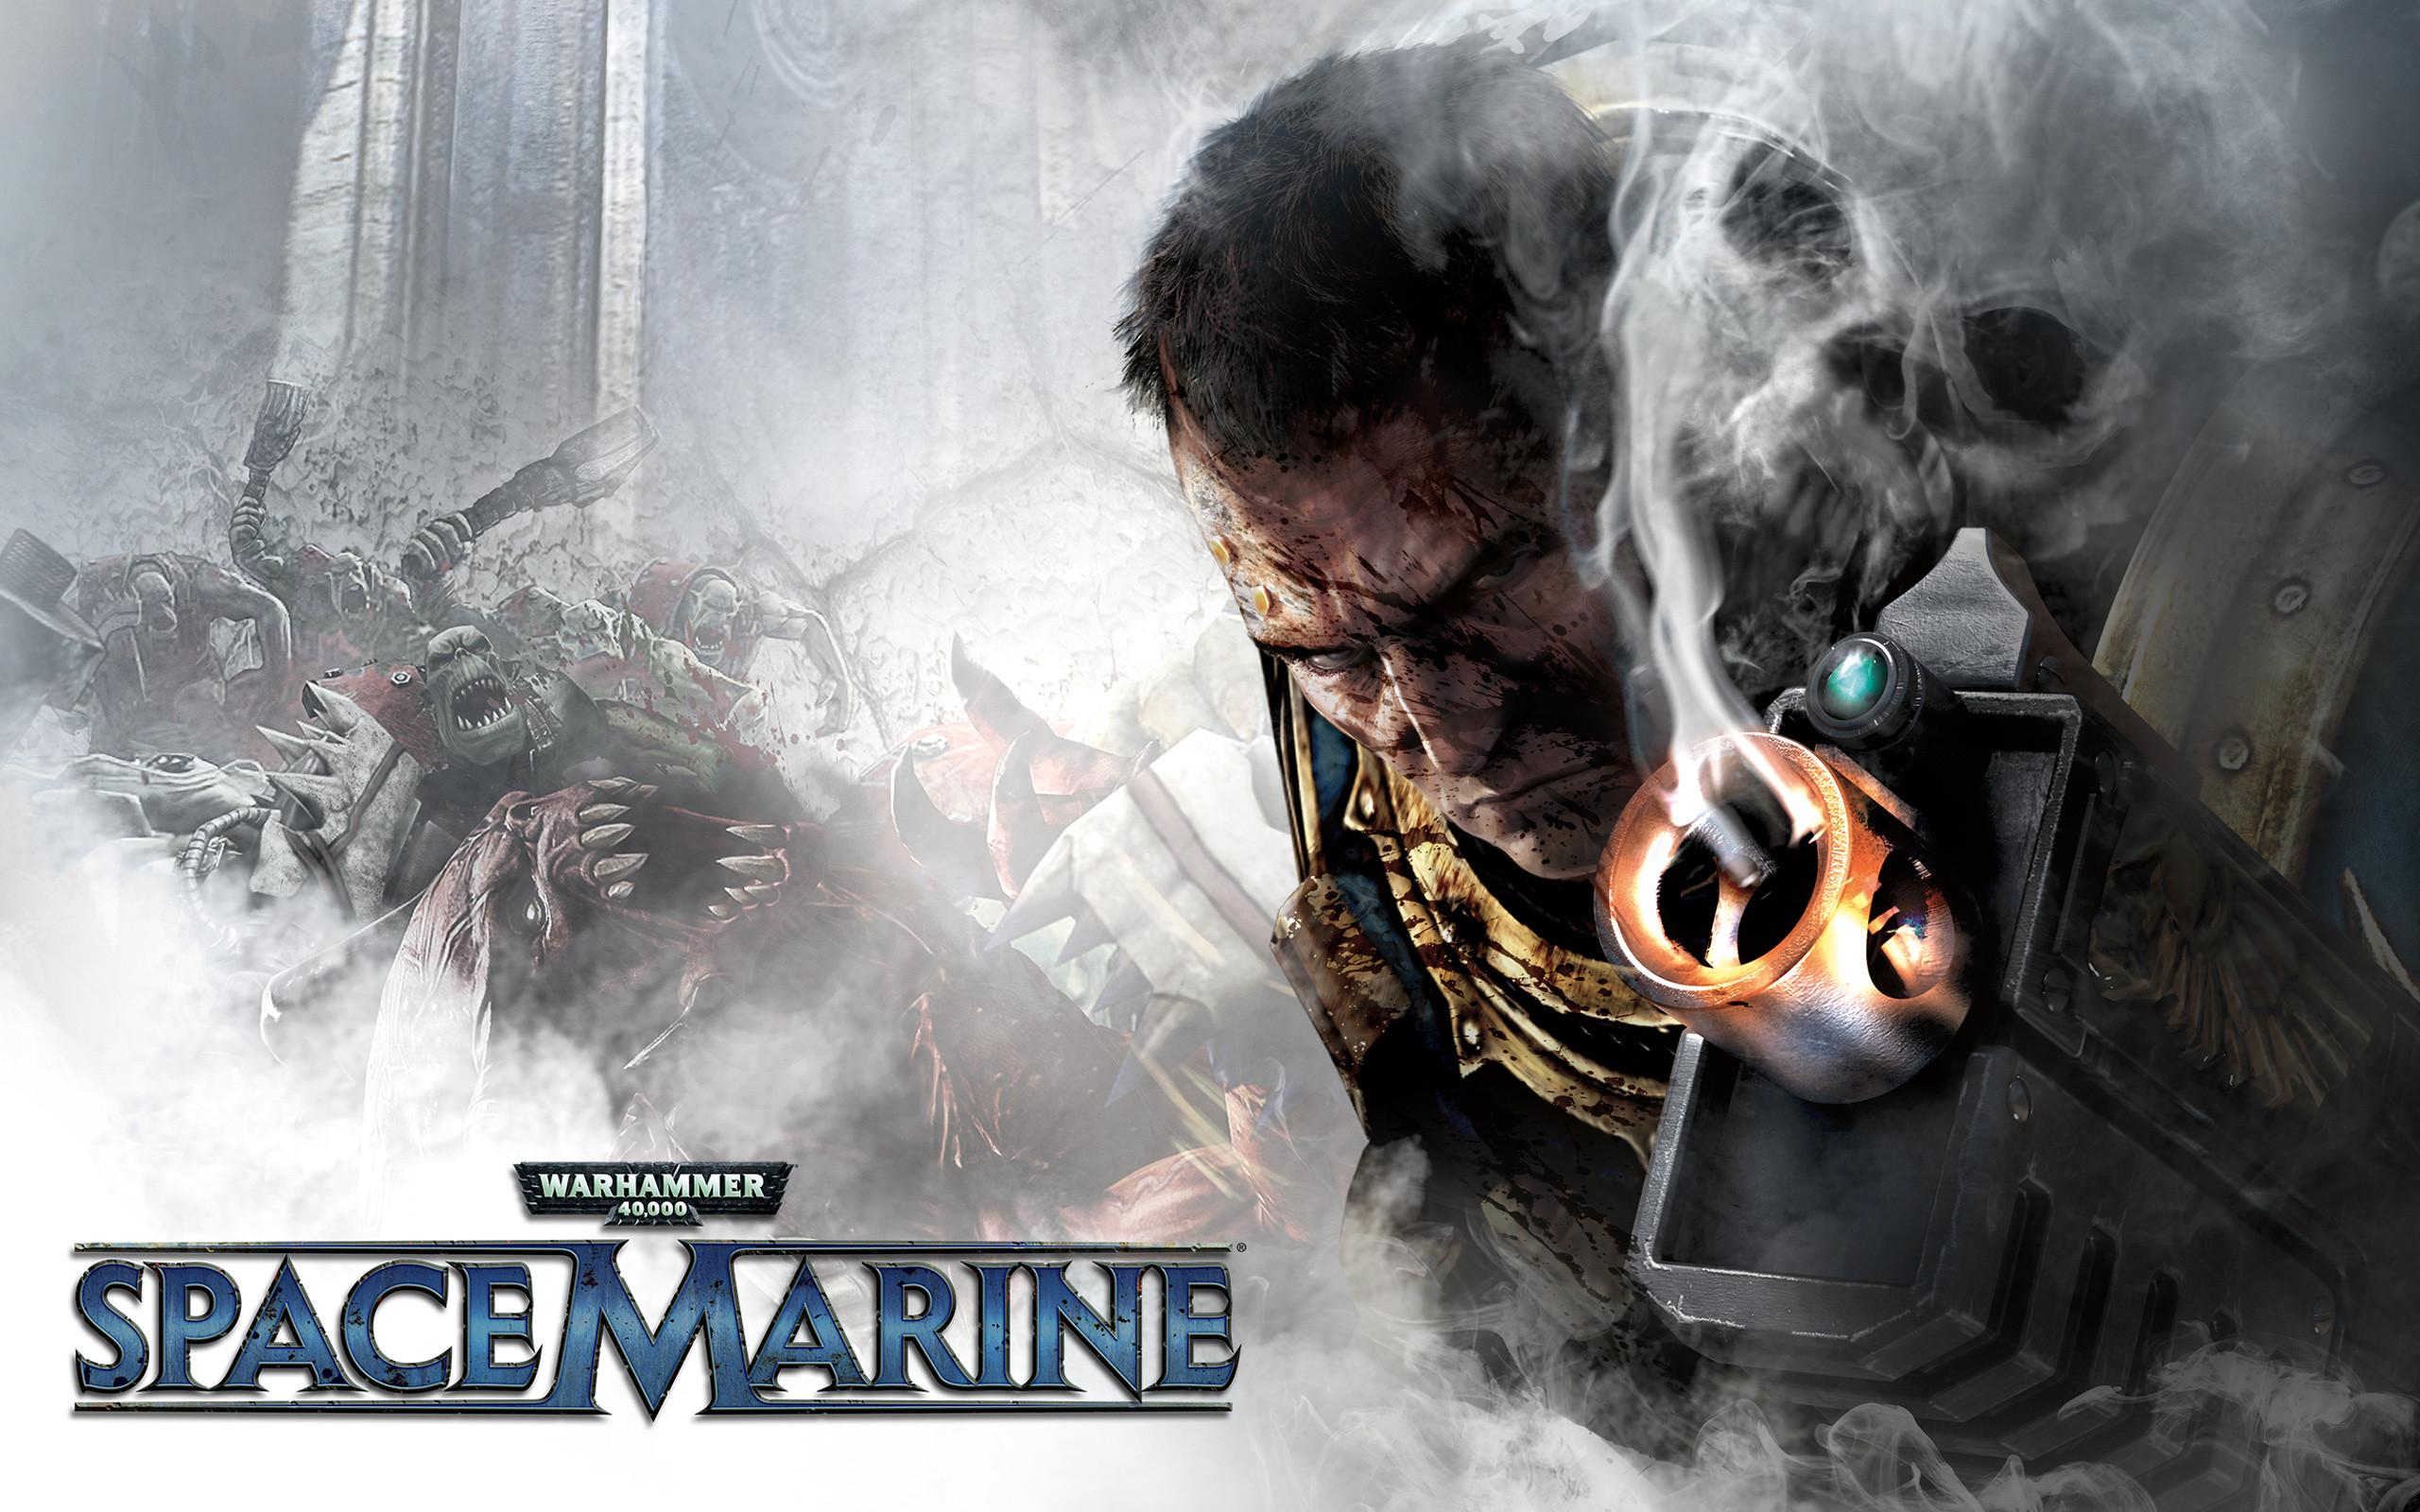 Warhammer Space Marine Game Wallpapers   HD Wallpapers